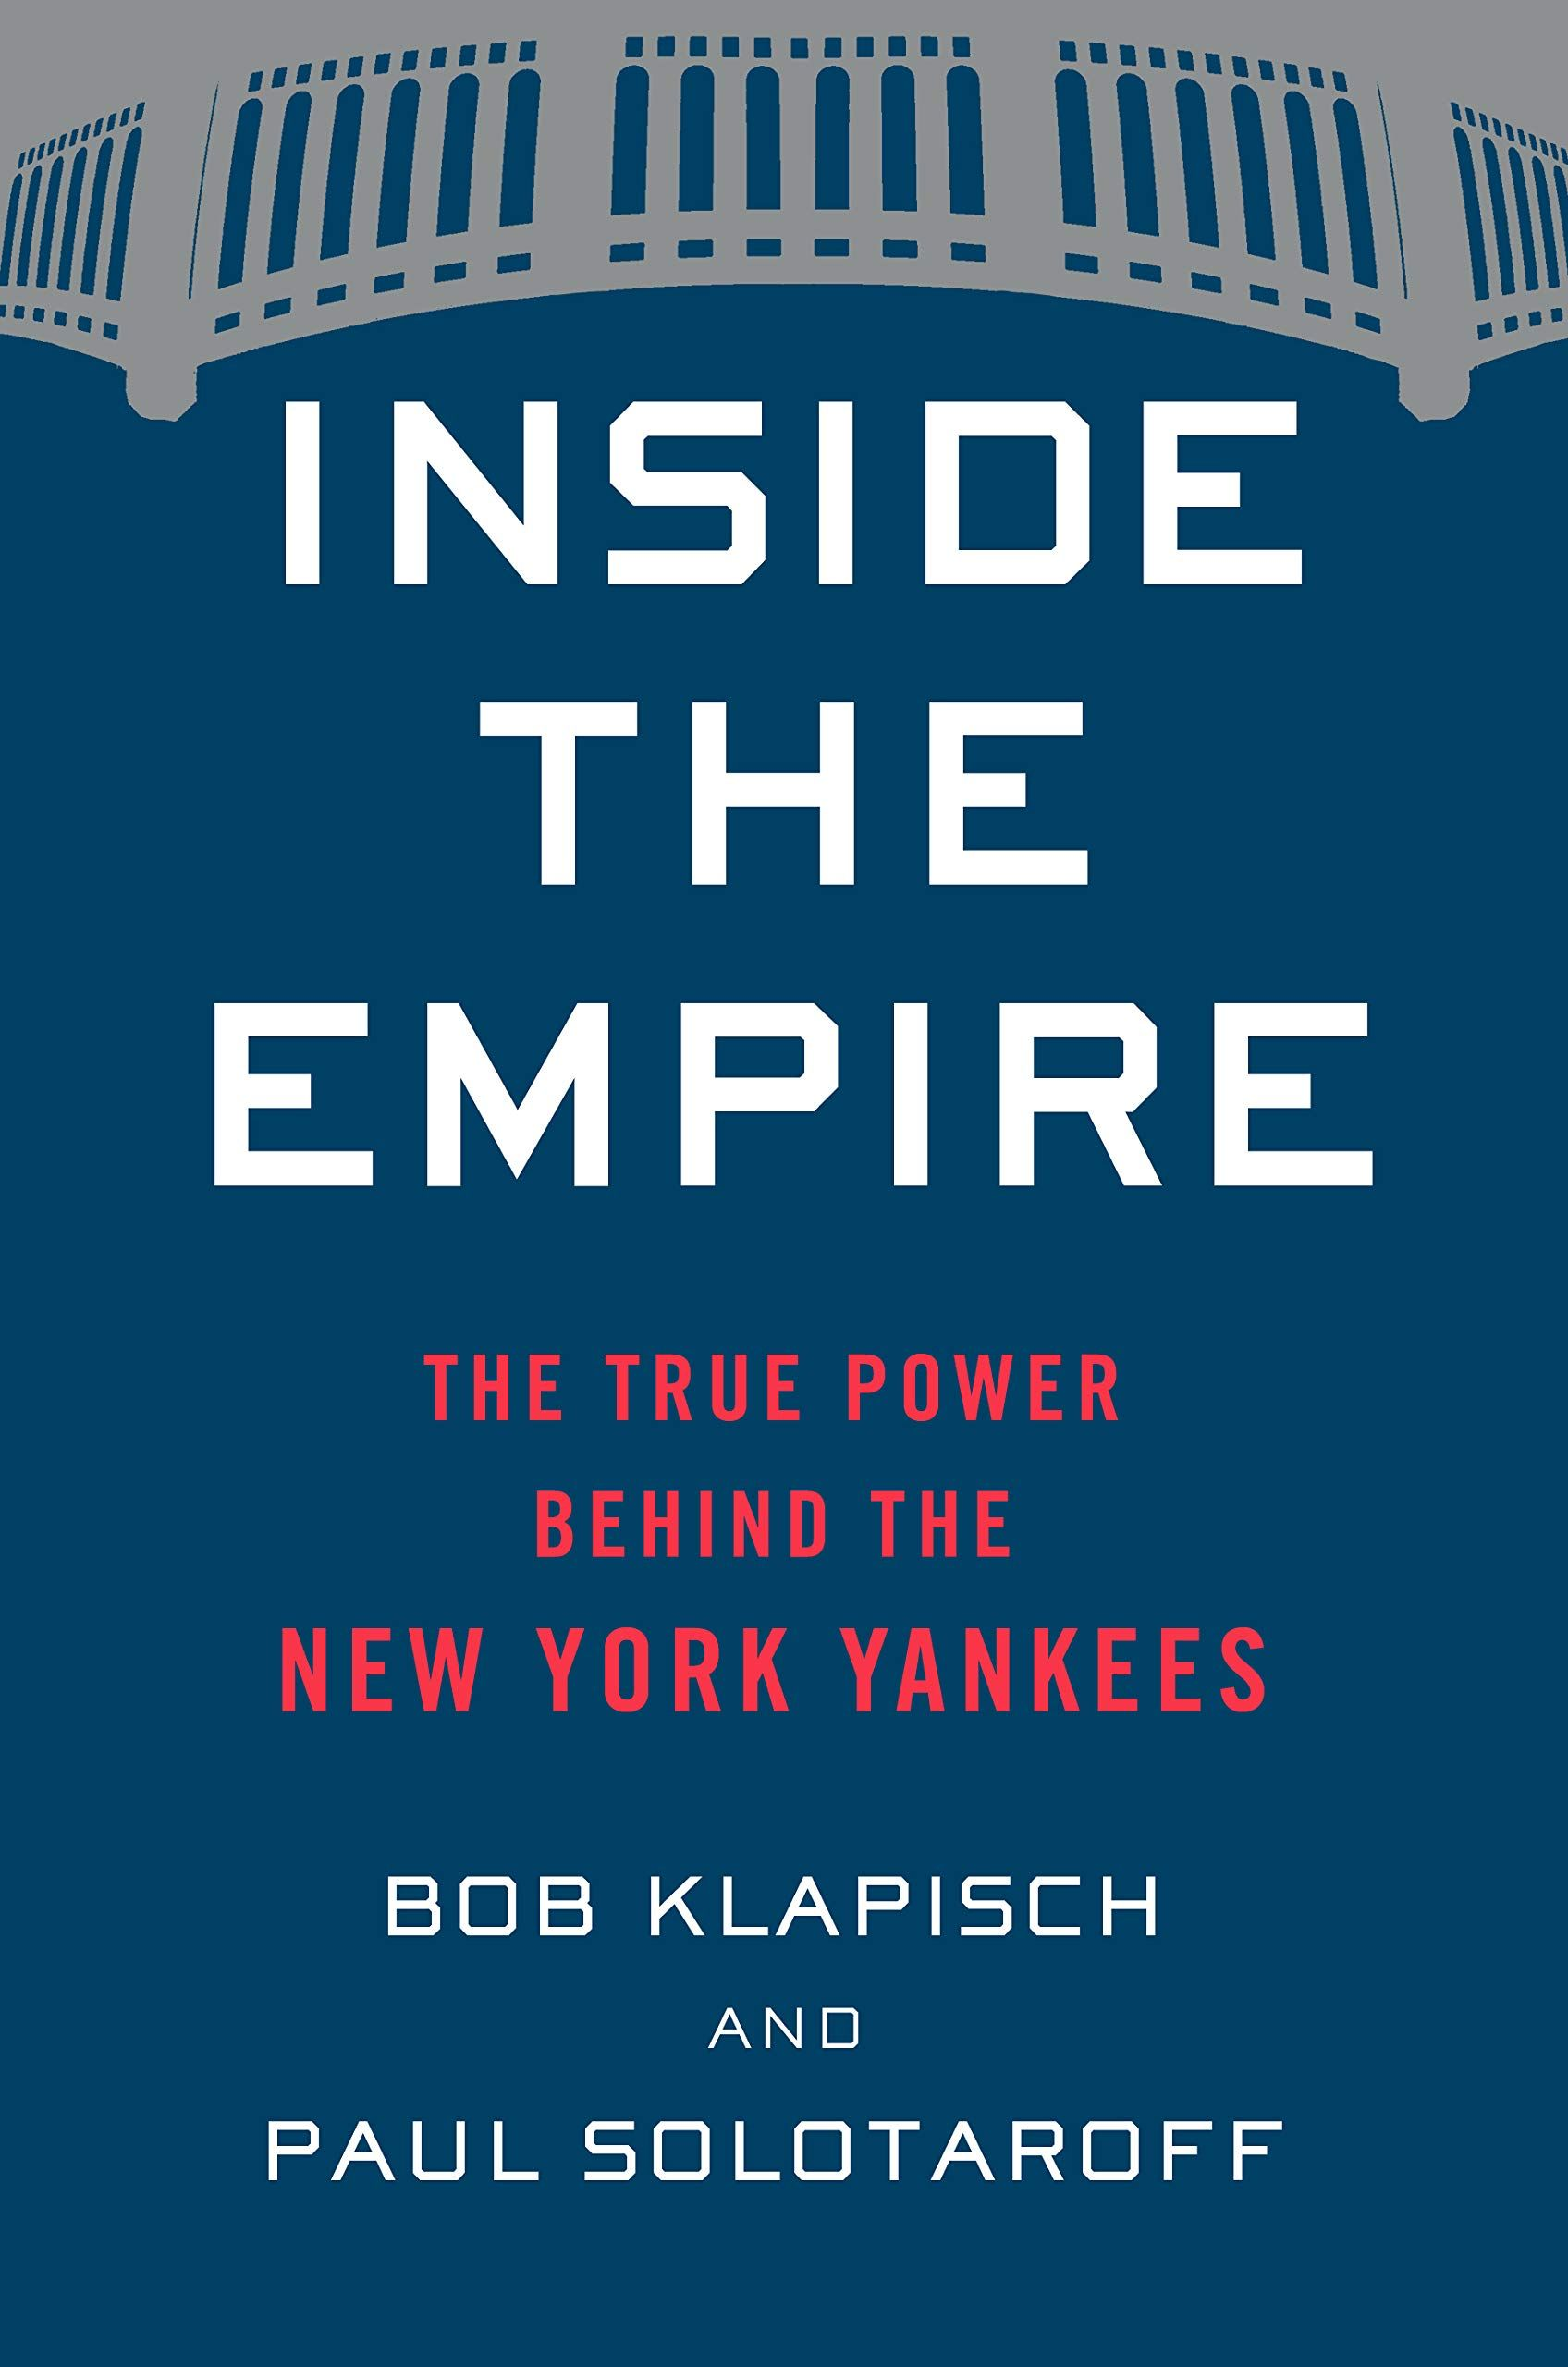 Inside The Empire The True Power Behind The New York Yankees Hardcover March 26 2019 Power York Empir Ebook Houghton Mifflin Harcourt New York Yankees